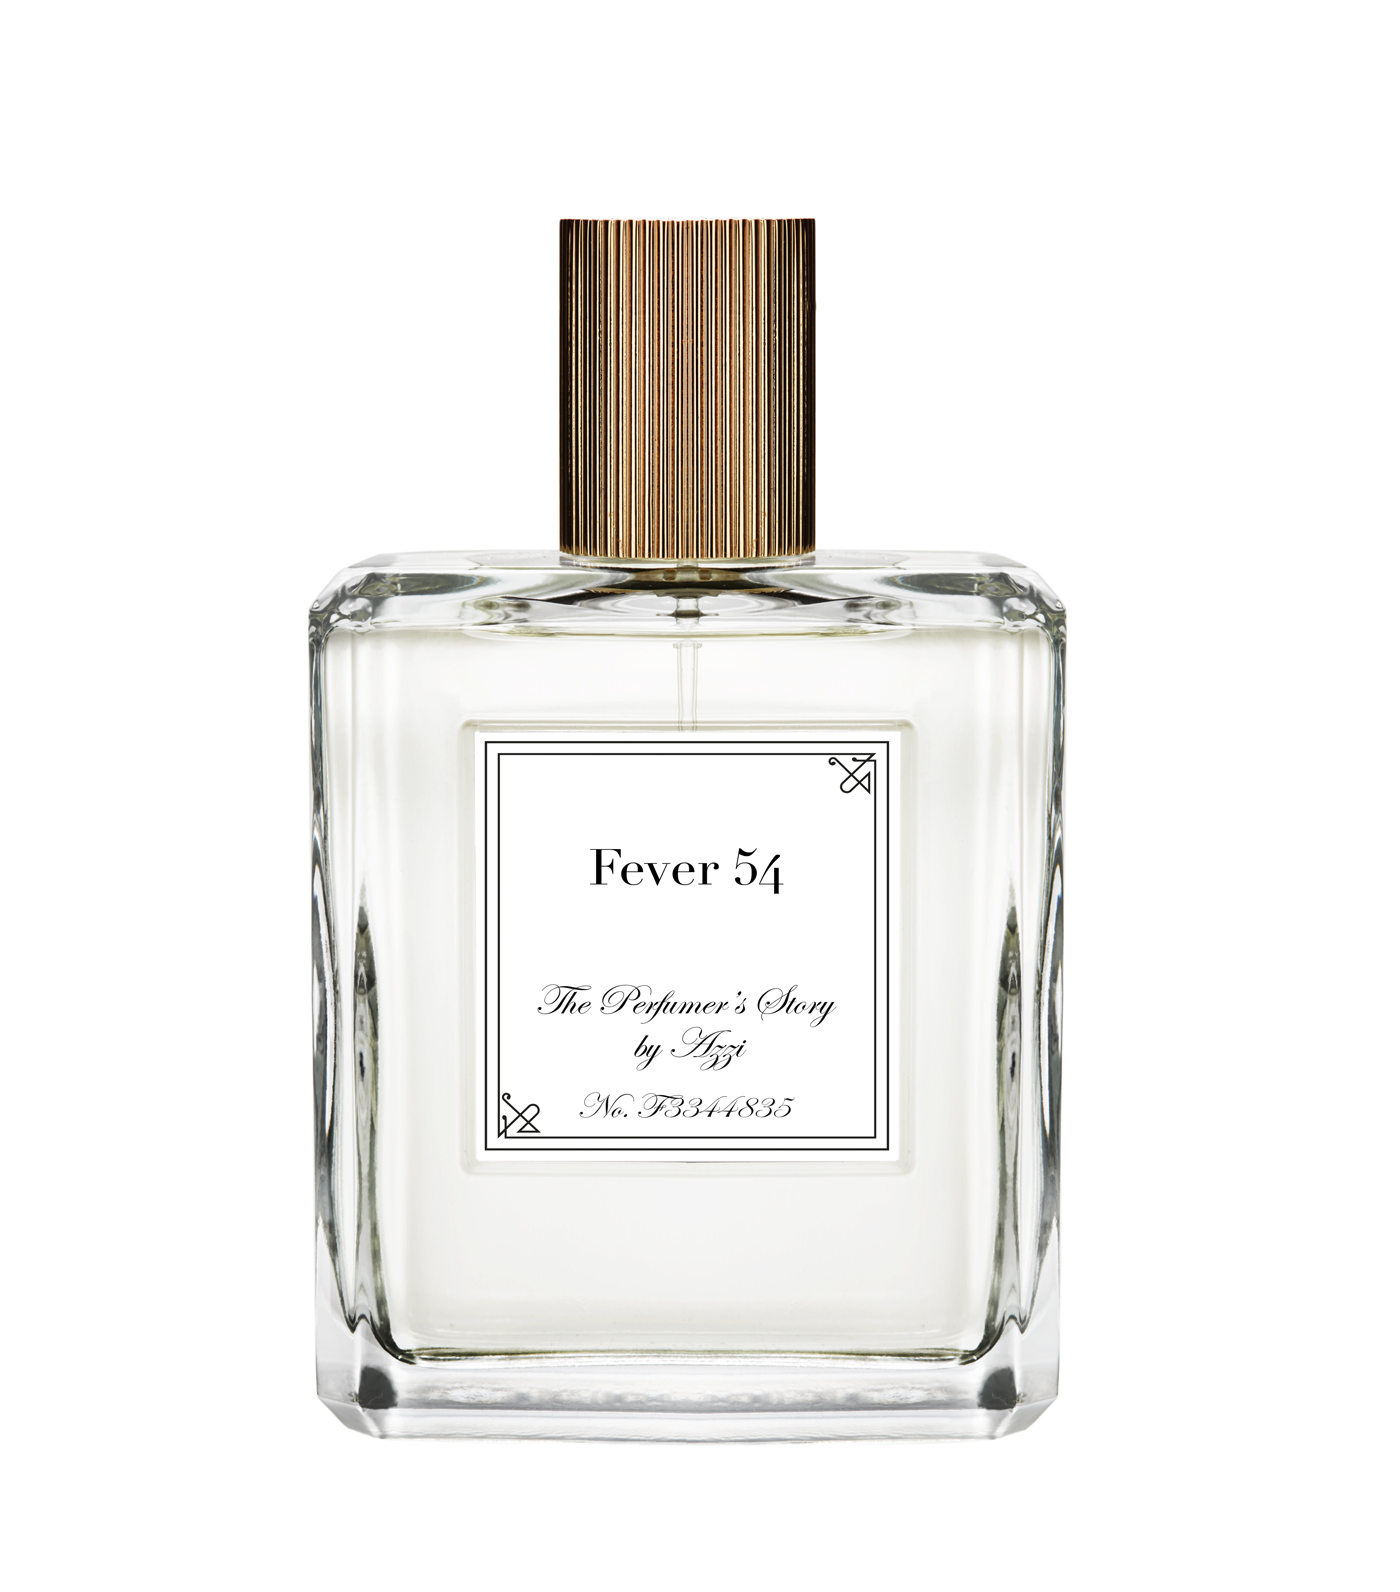 Fever 54 Eau De Parfum 150ml by The Perfumer's Story by Azzi on curated-crowd.com